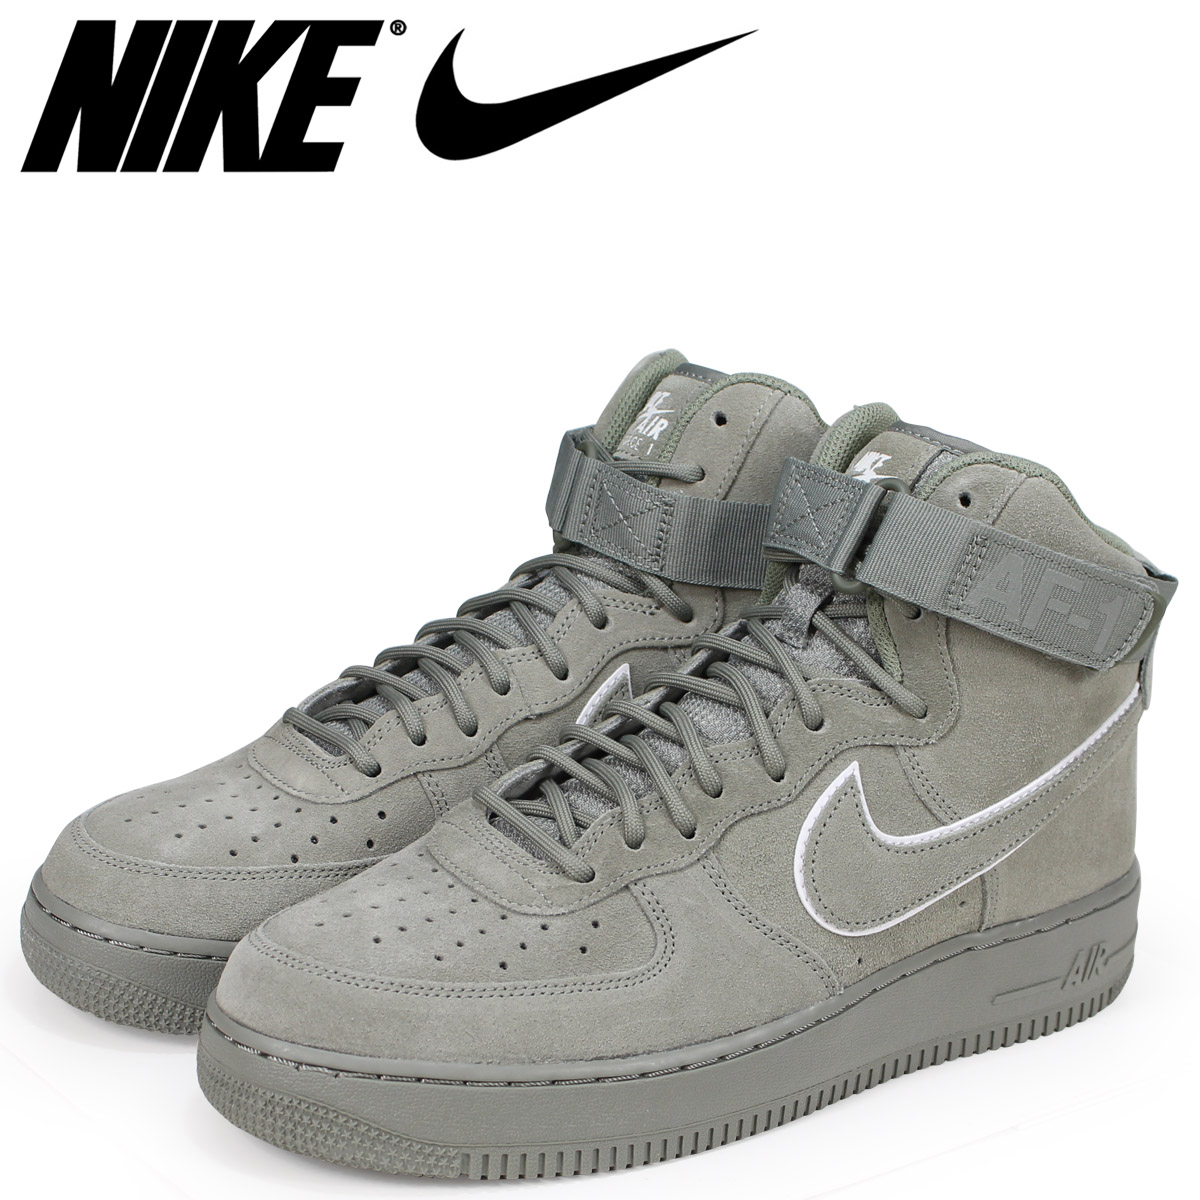 NIKE Nike air force 1 high 07 LV8 sneakers men AIR FORCE 1 HIGH AA1118-002  green